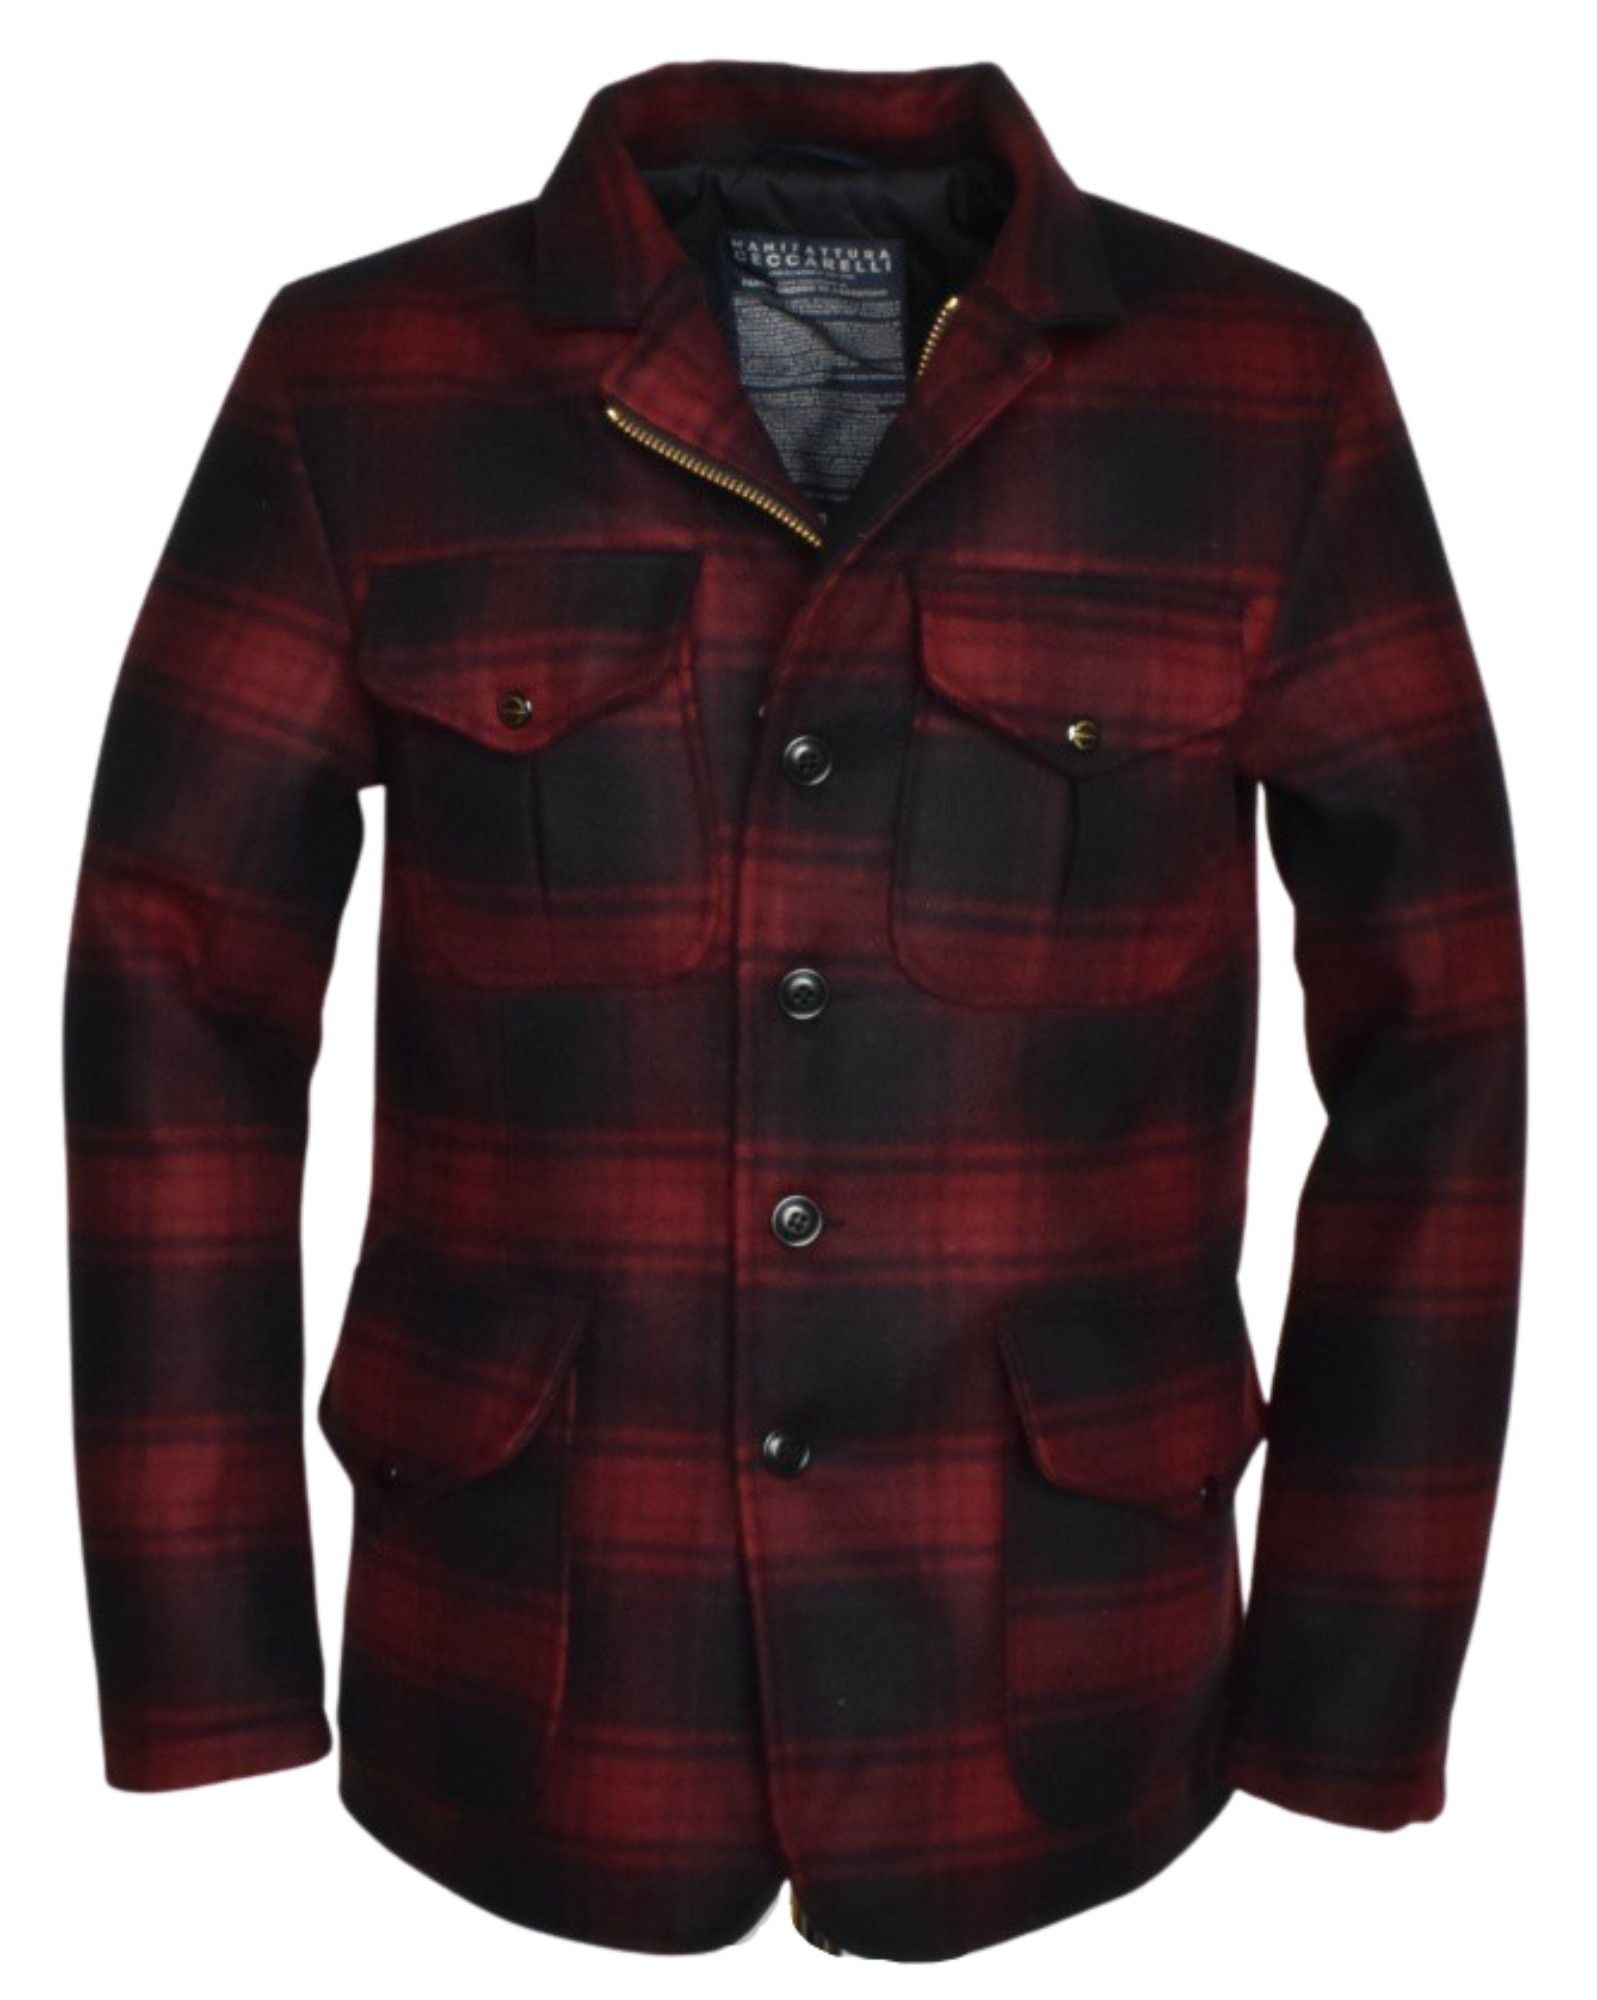 MANIFATTURA CECCARELLI - Herren Jacke - Wool Alligator Jacket - Red Black